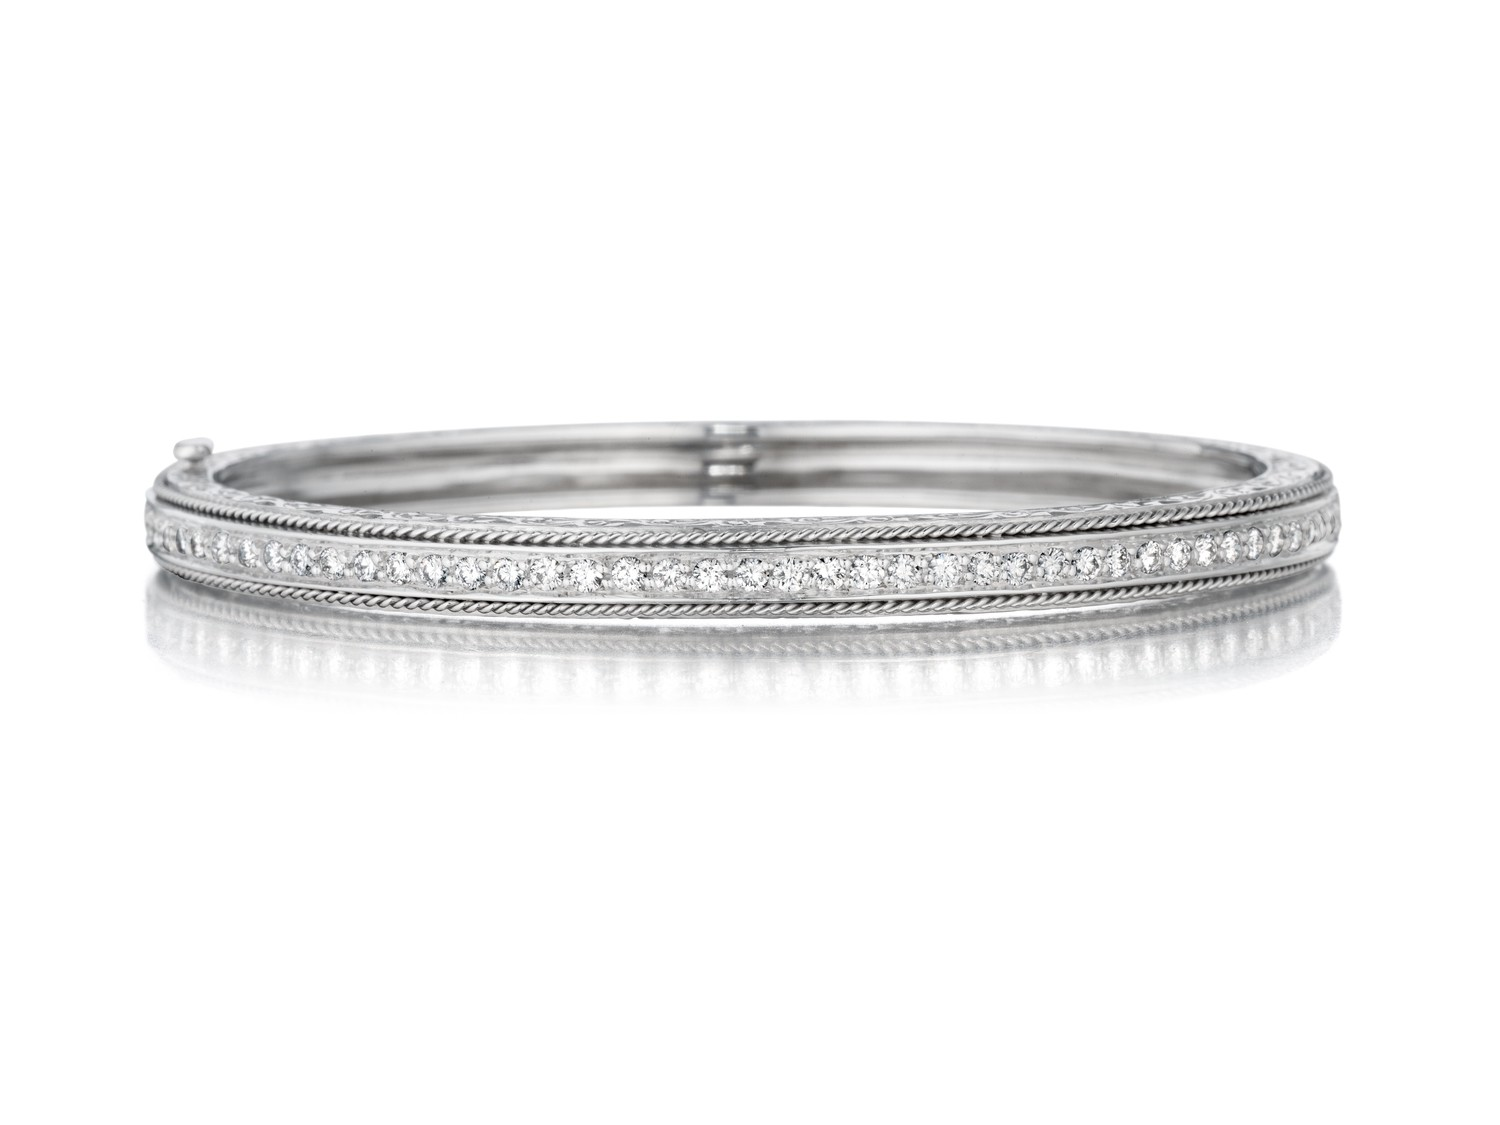 Medium Engraved Pave Hinged Bangle